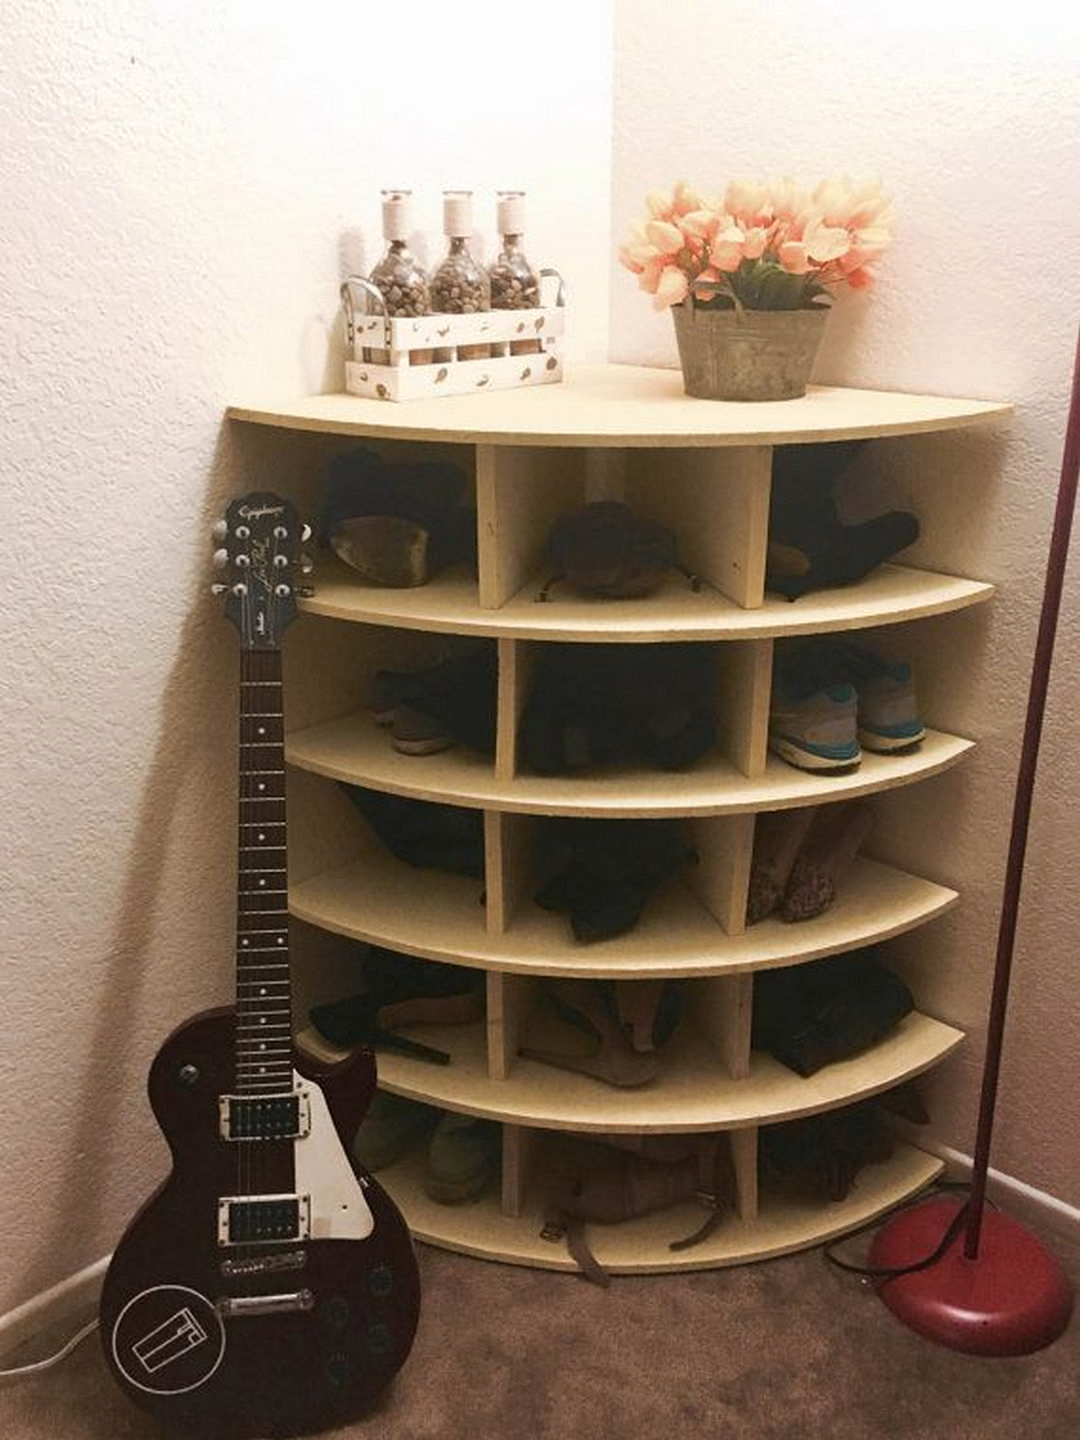 58 Brilliant Shoes Rack Design Ideas | Furniture Design Ideas ...